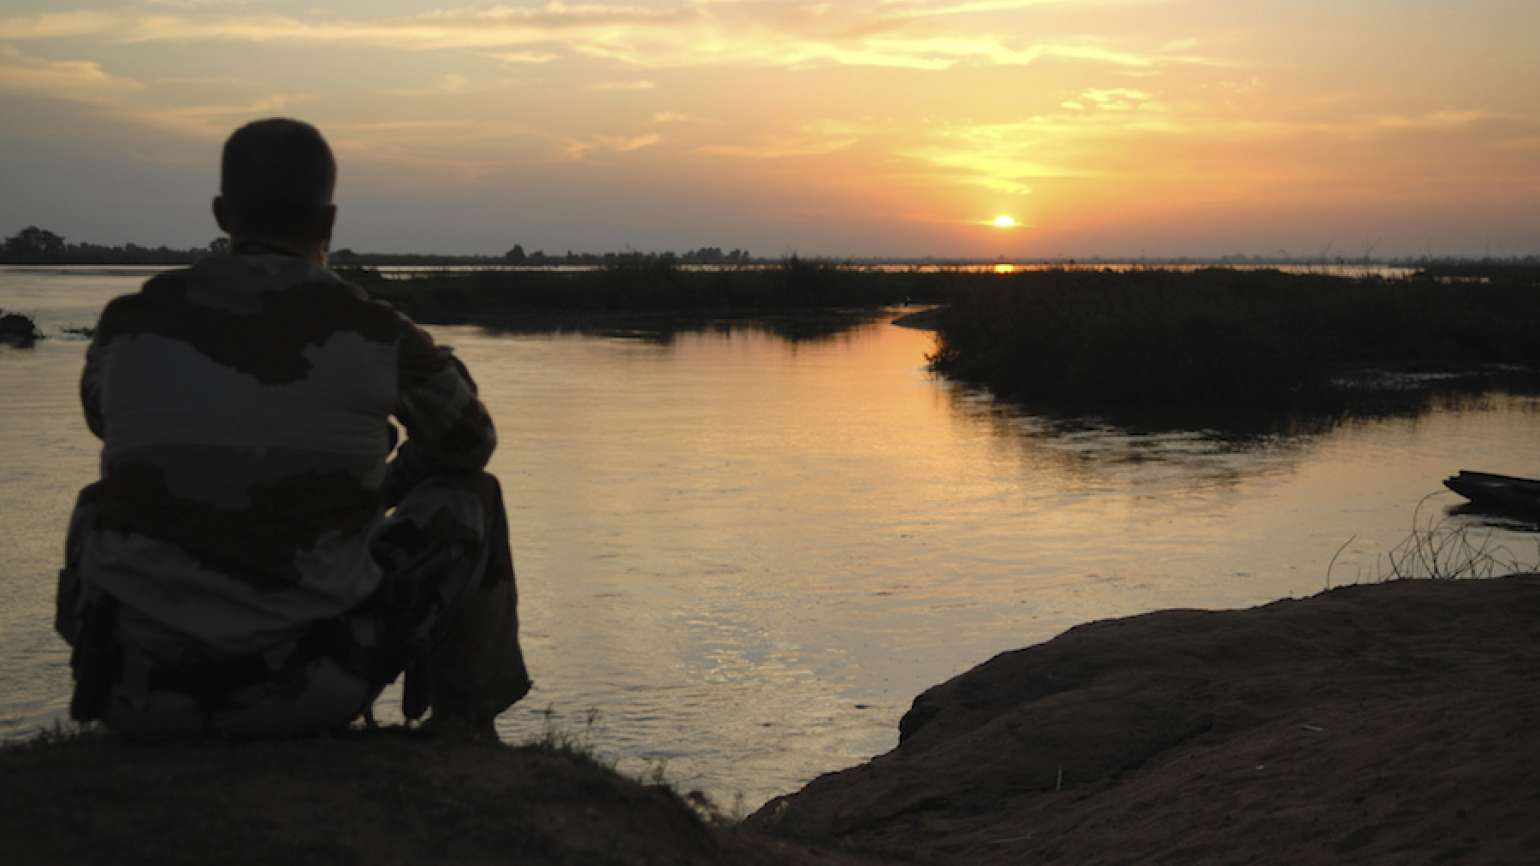 Soldier at sunset (Thinkstock)